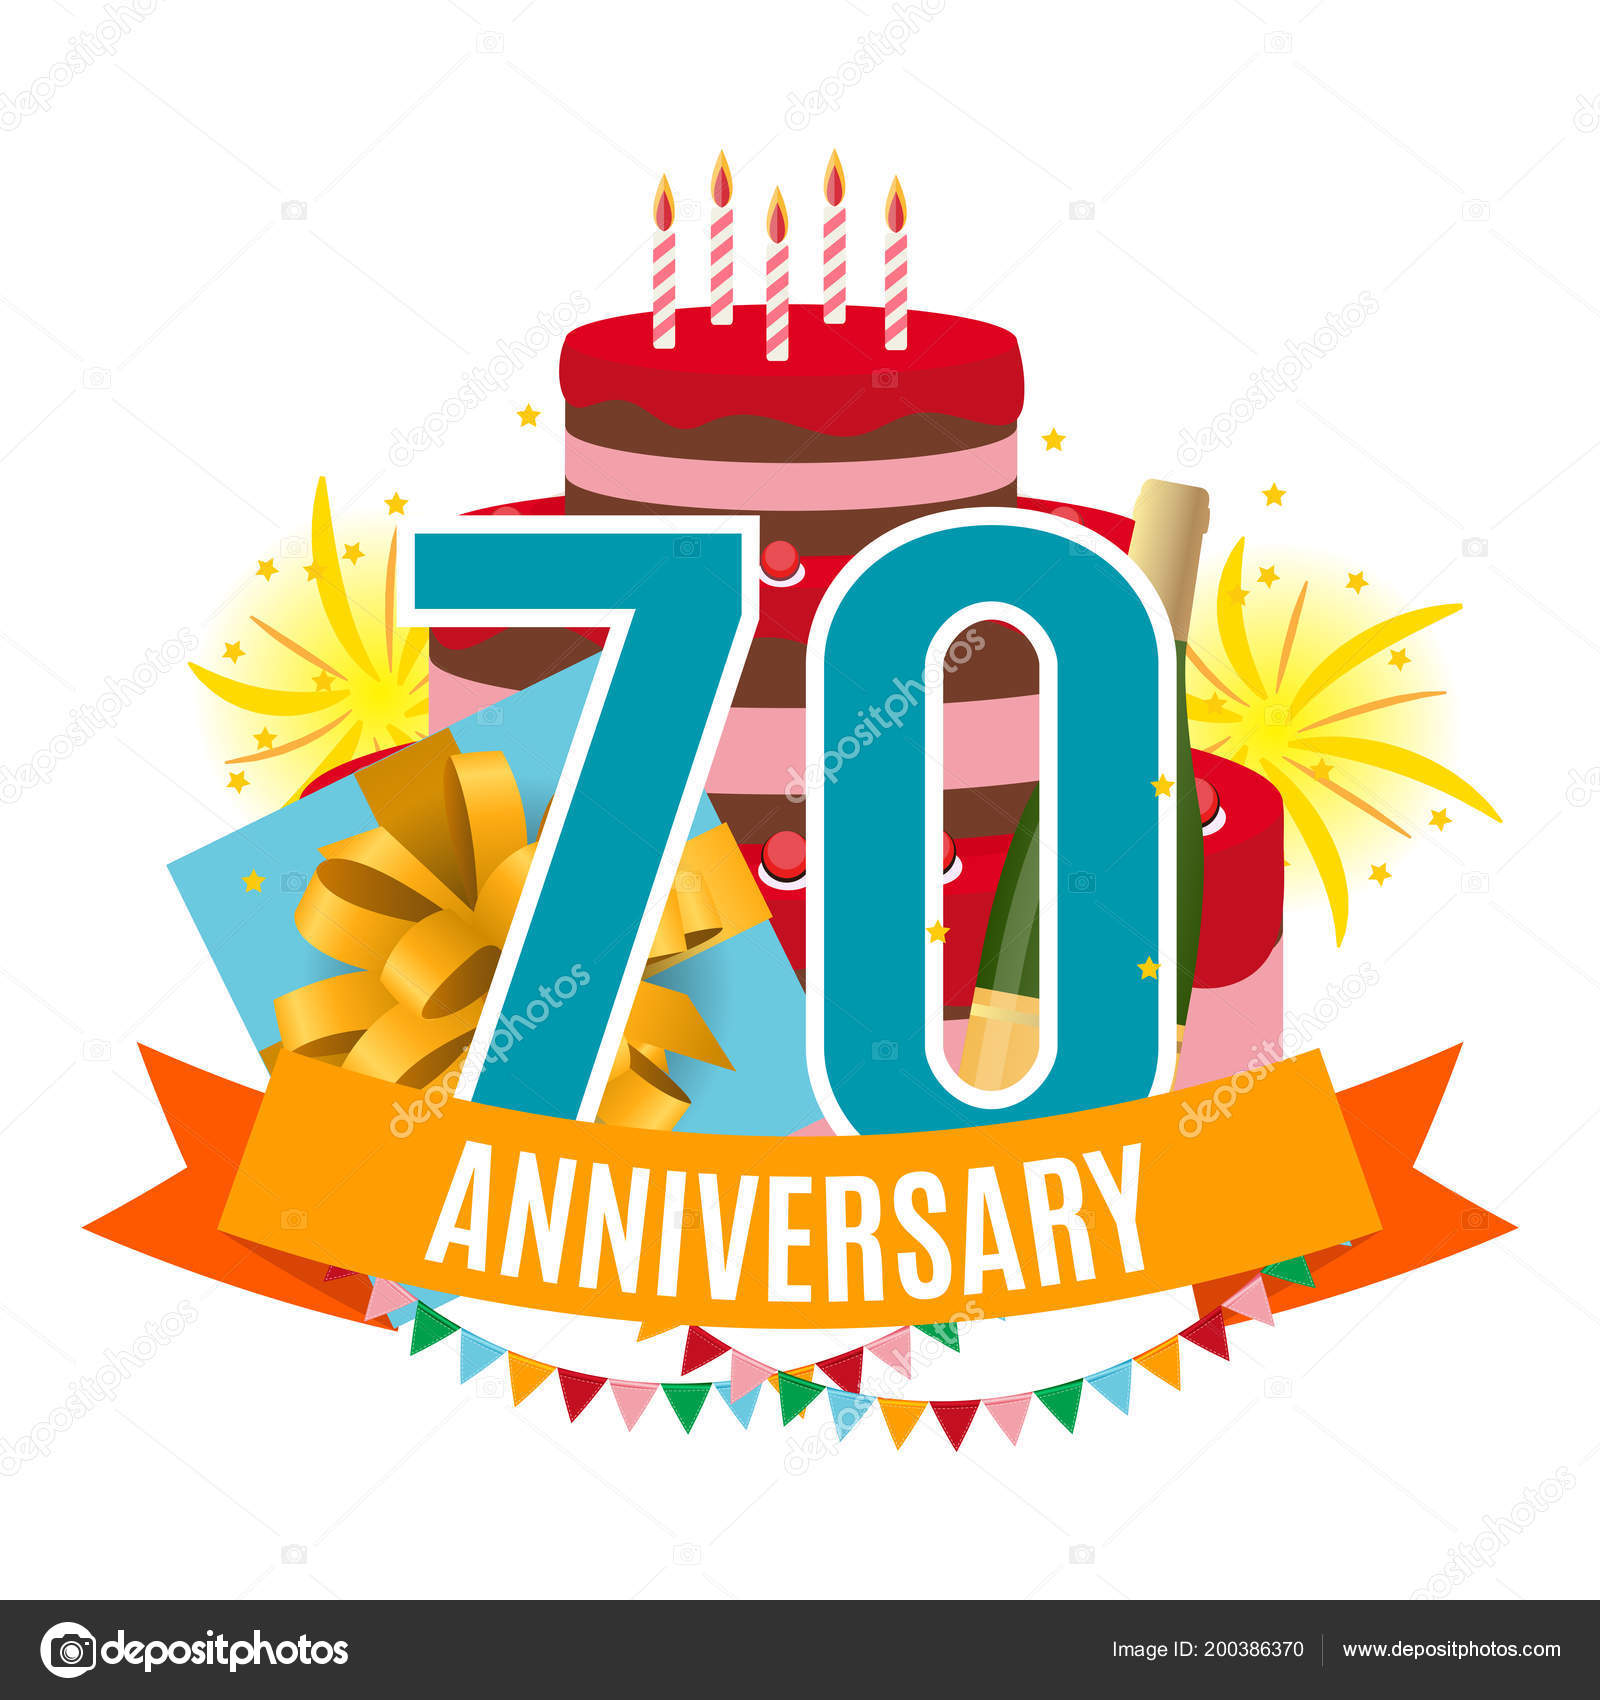 Template 70 Years Anniversary Congratulations Greeting Card with